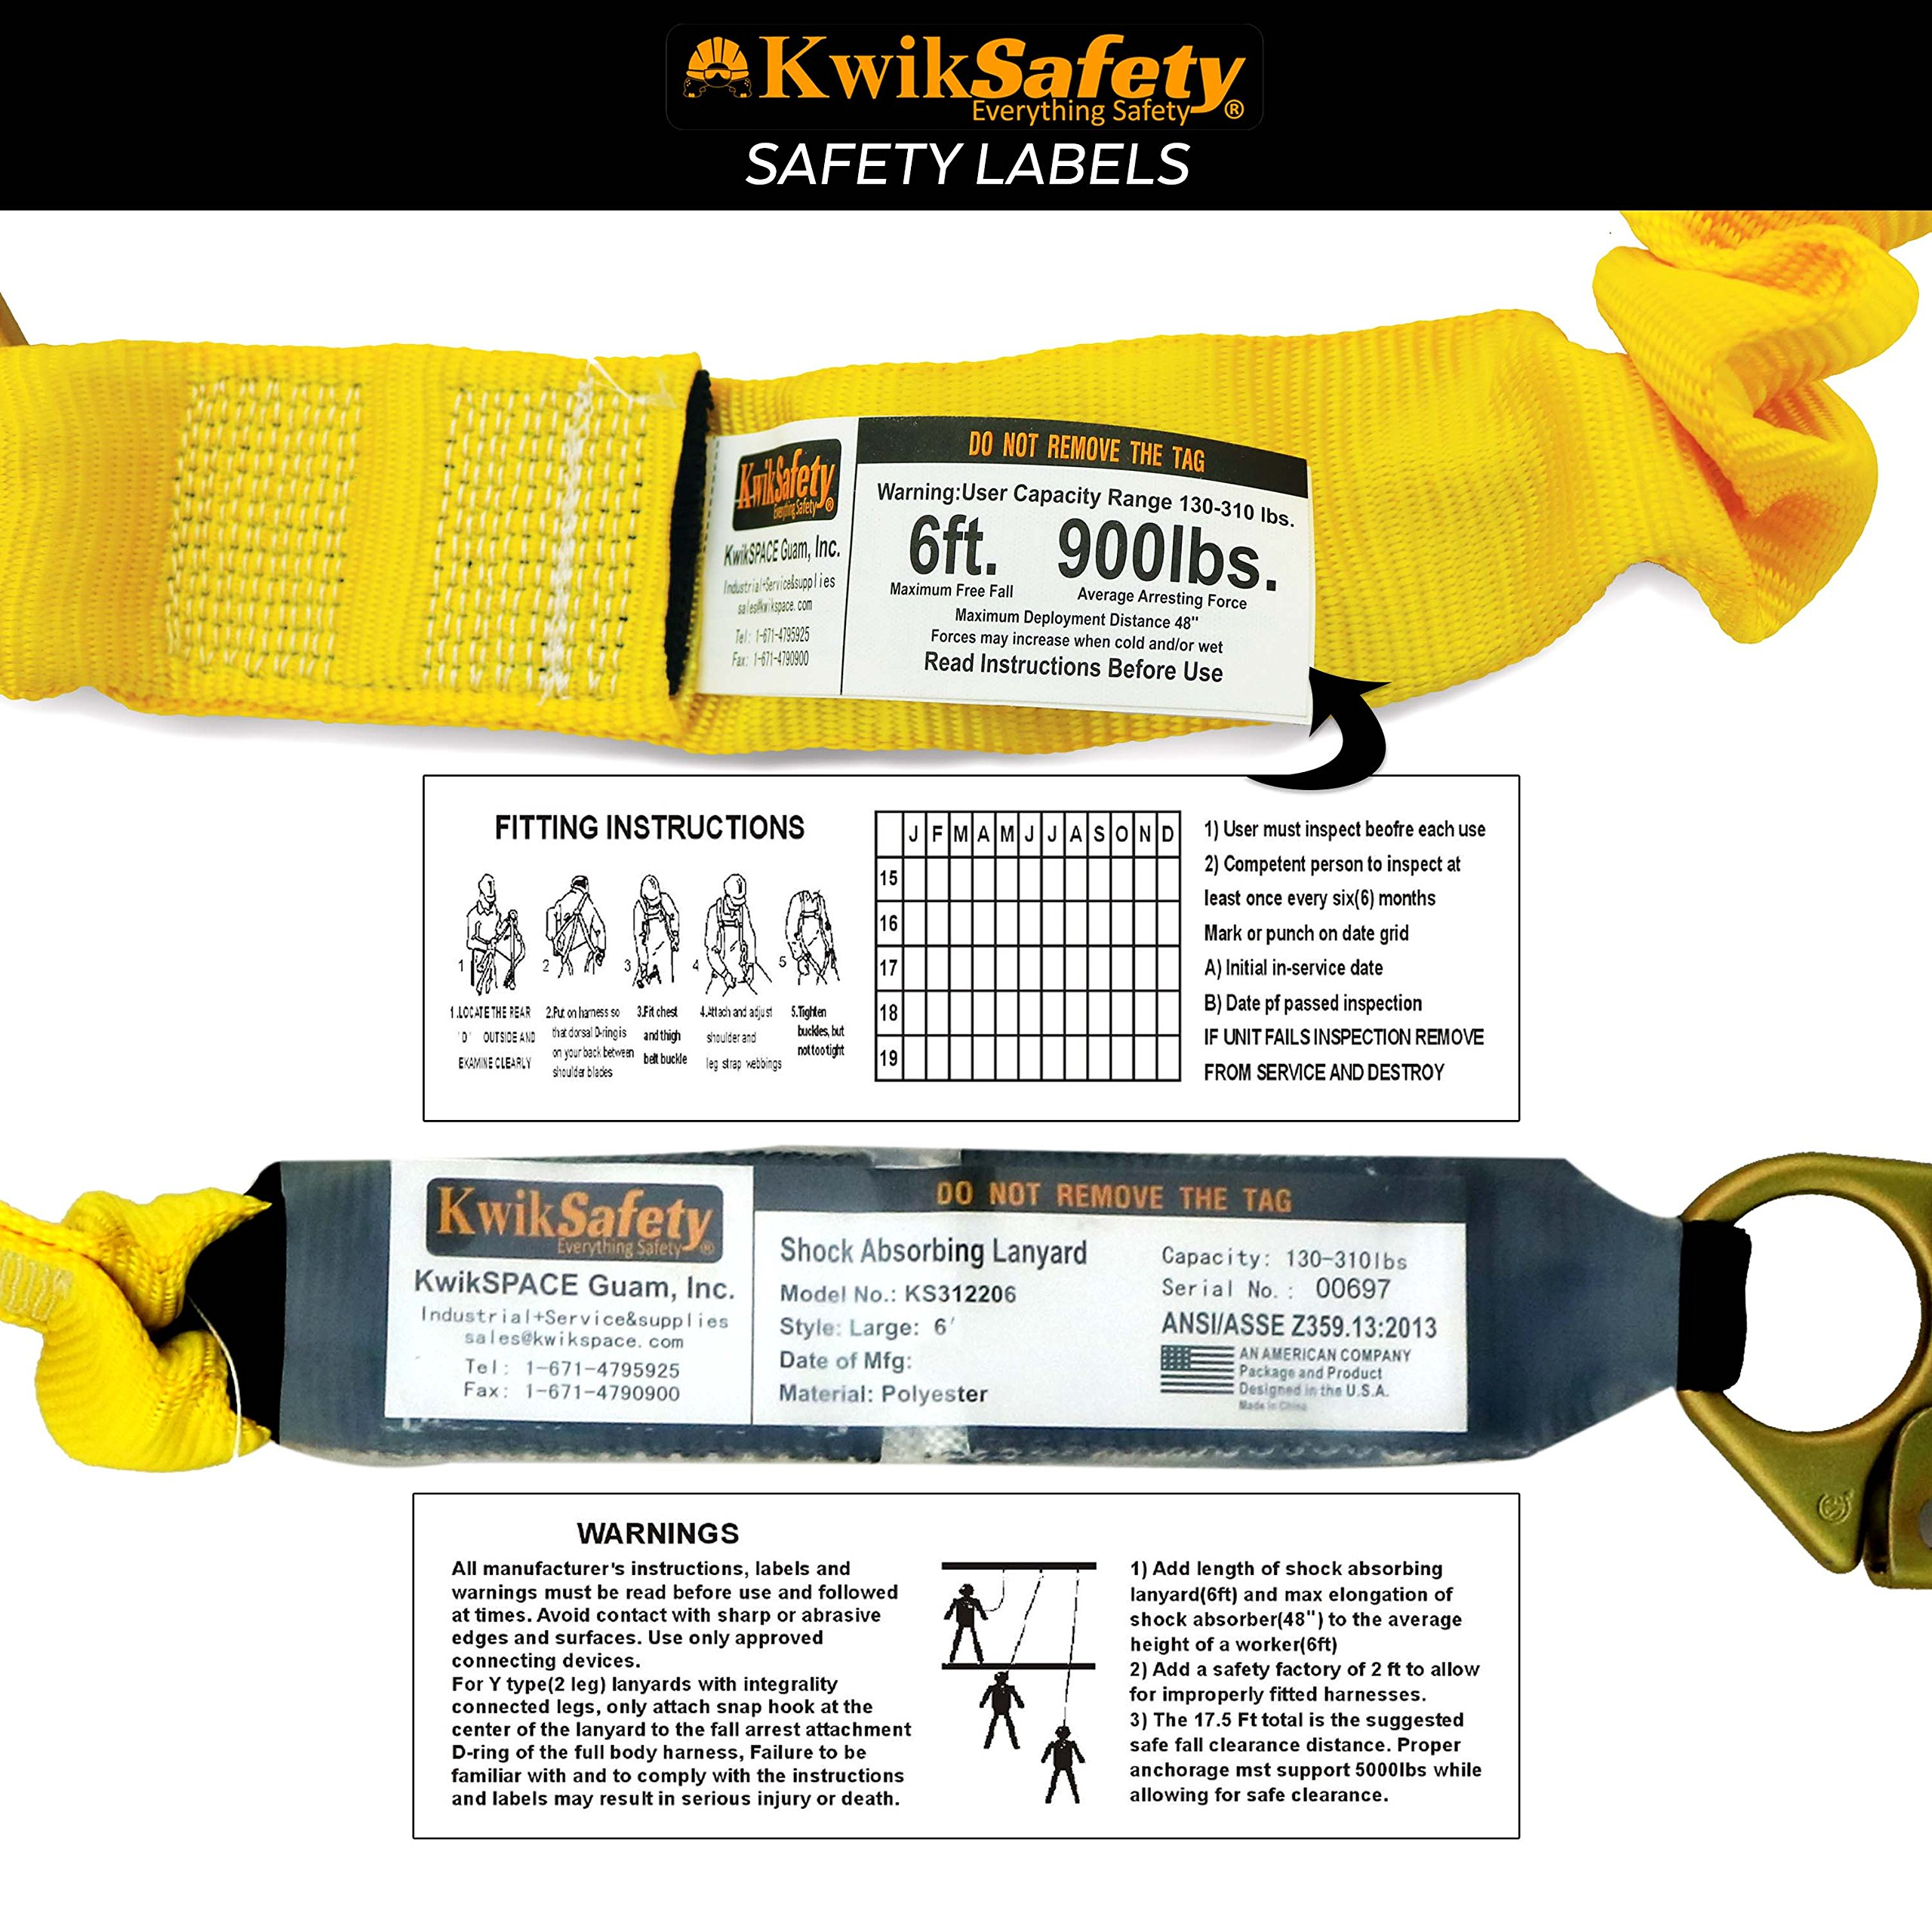 KwikSafety (Charlotte, NC) BOA 4 PACK (External Shock Absorber) Single Leg 6ft Safety Lanyard OSHA ANSI Fall Protection Restraint Equipment Snap Rebar Hook Connectors Construction Arborist Roofing by KwikSafety (Image #7)